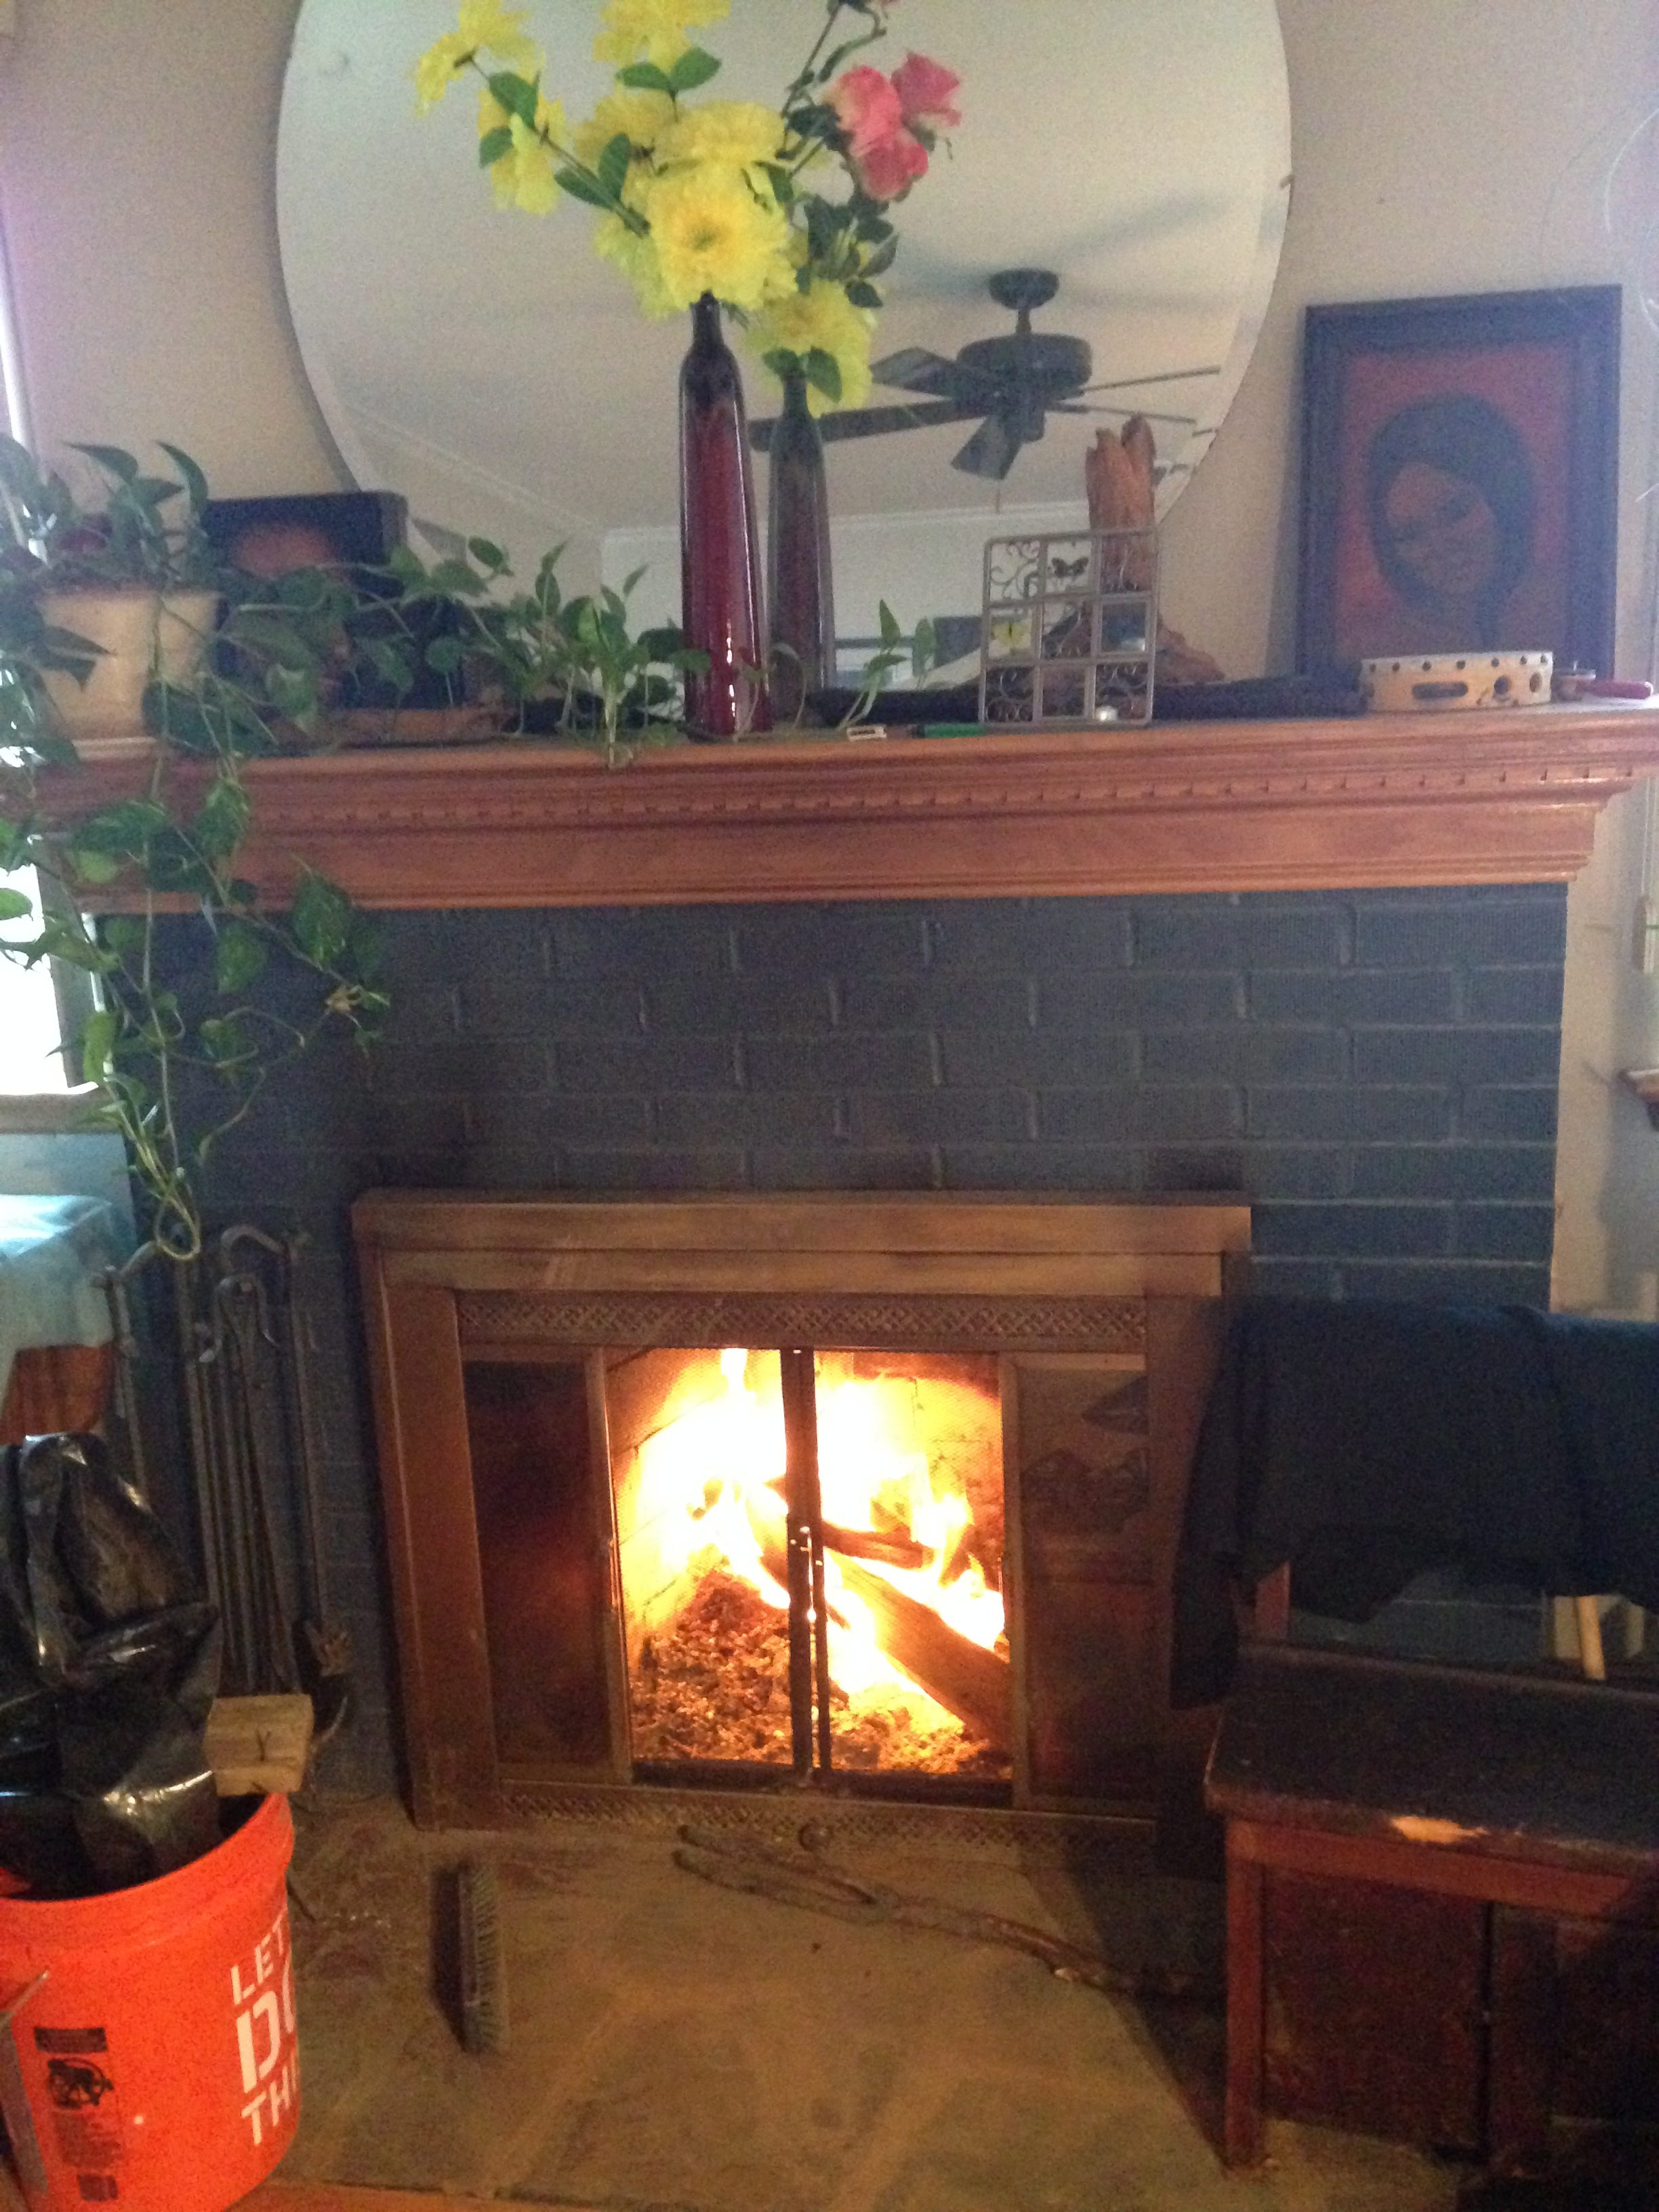 pic of fireplace. energetics inside. burn up excess